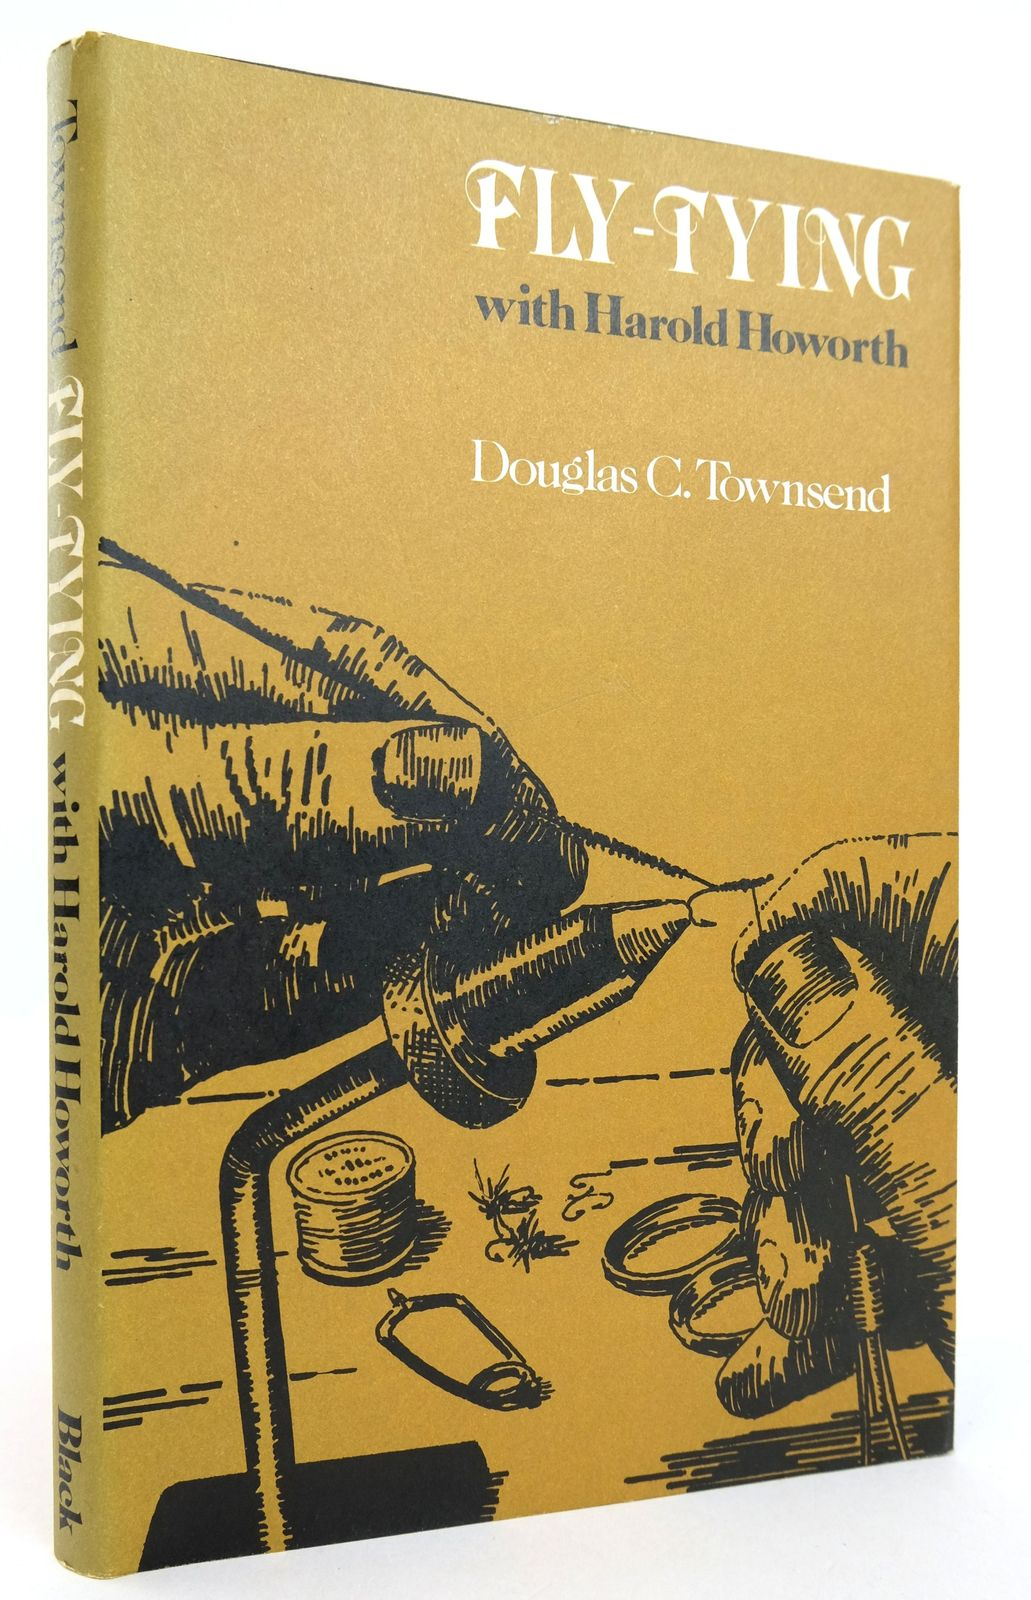 Photo of FLY-TYING WITH HAROLD HOWORTH written by Townsend, Douglas C. illustrated by Townsend, Douglas C. published by Adam & Charles Black (STOCK CODE: 1819197)  for sale by Stella & Rose's Books